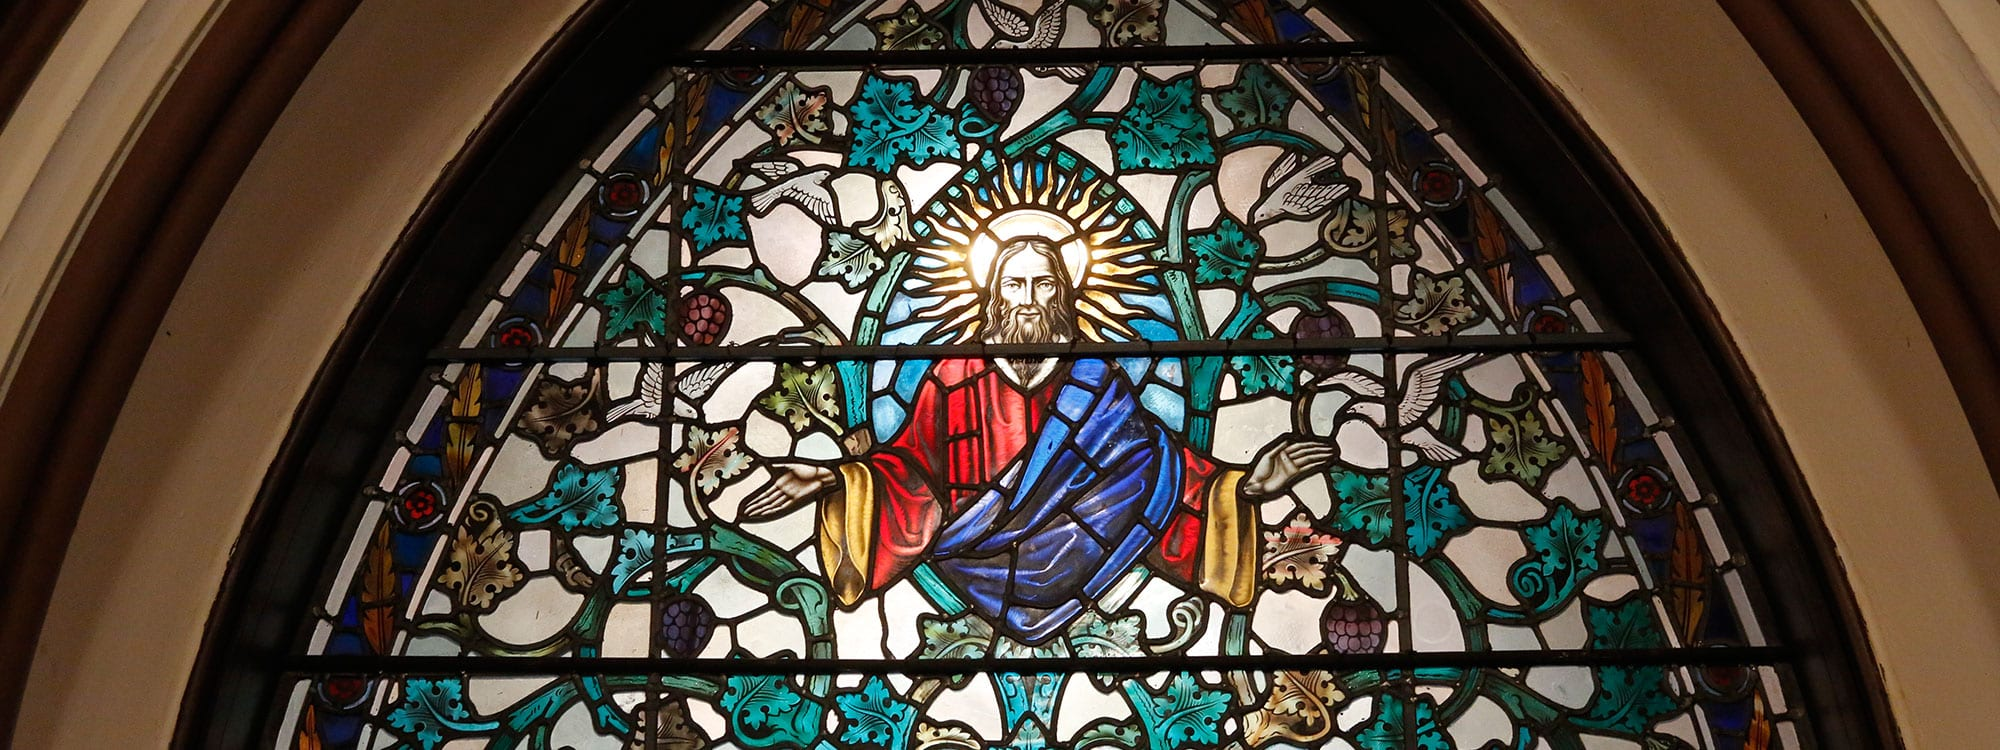 St. Thomas Jesus Stained Glass